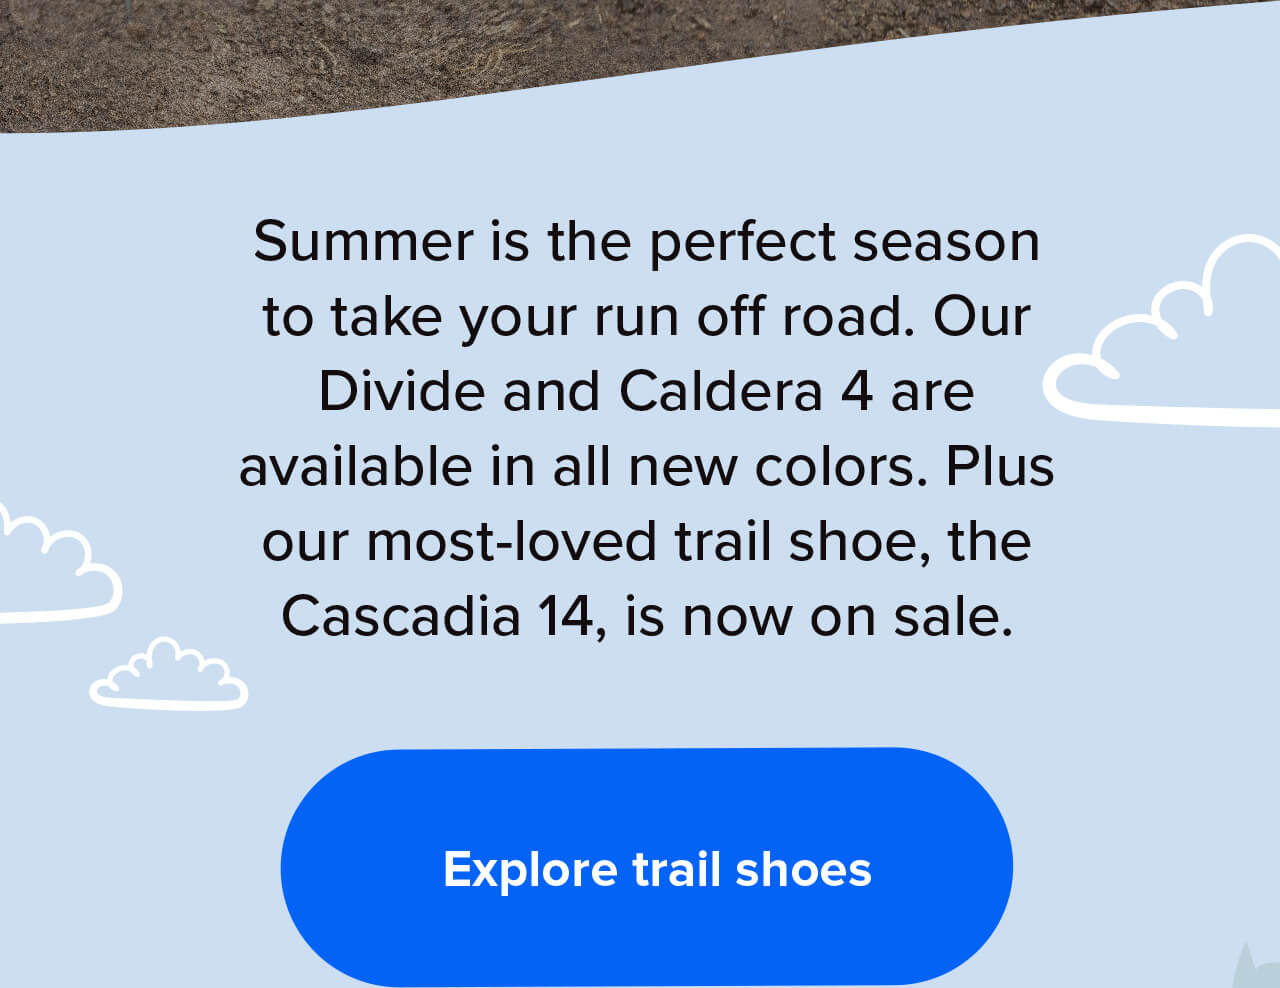 Summer is the perfect season to take your run off road. Our Divide and Caldera 4 are available in all new colors. Plus our most-loved trail shoe, the Cascadia 14, is now on sale.   Explore trail shoes